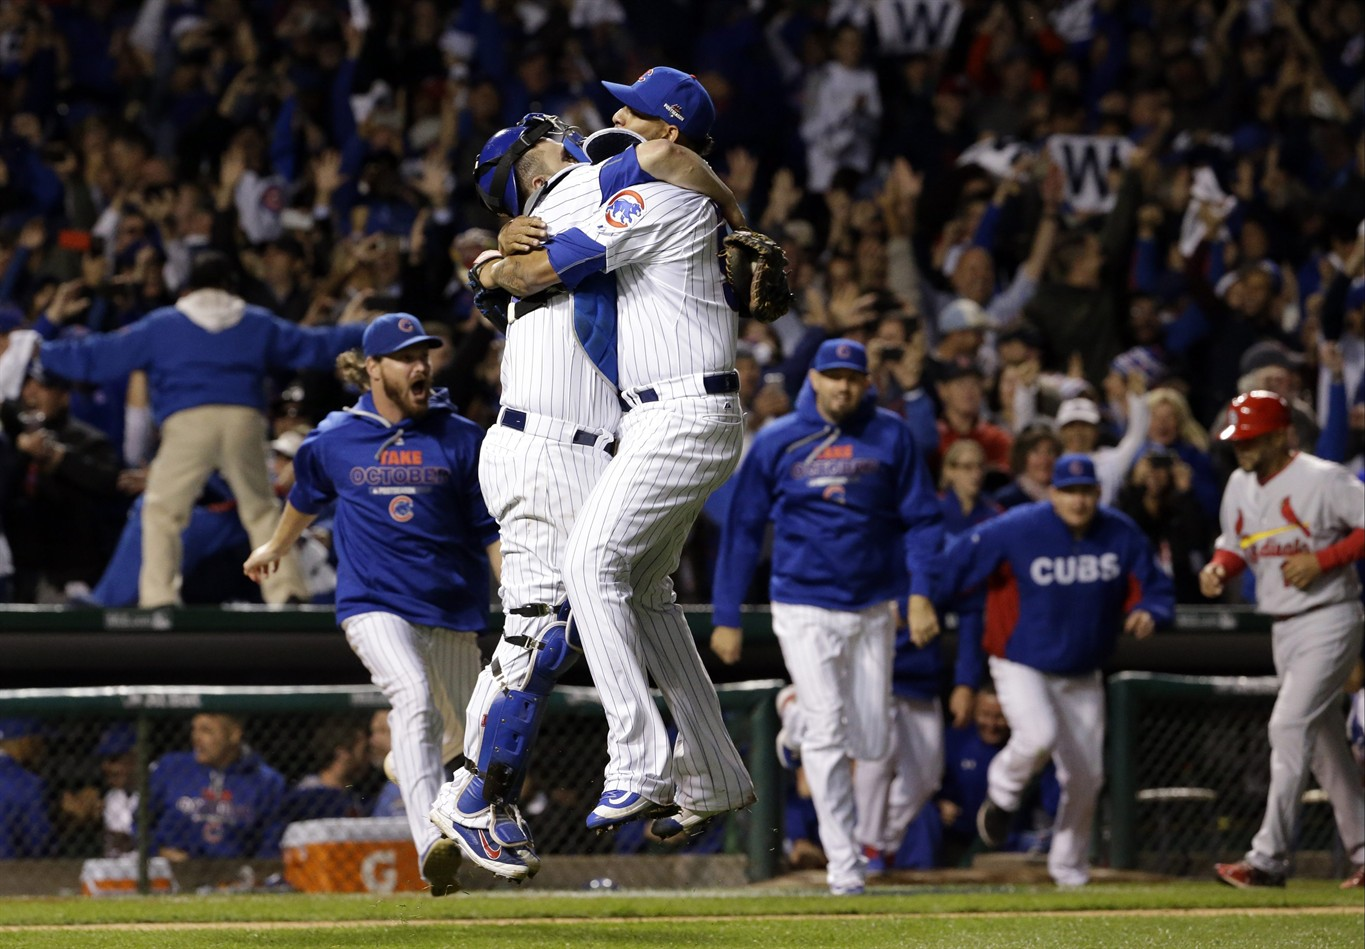 cubs clinch post-season series at wrigley field for 1st time, beat